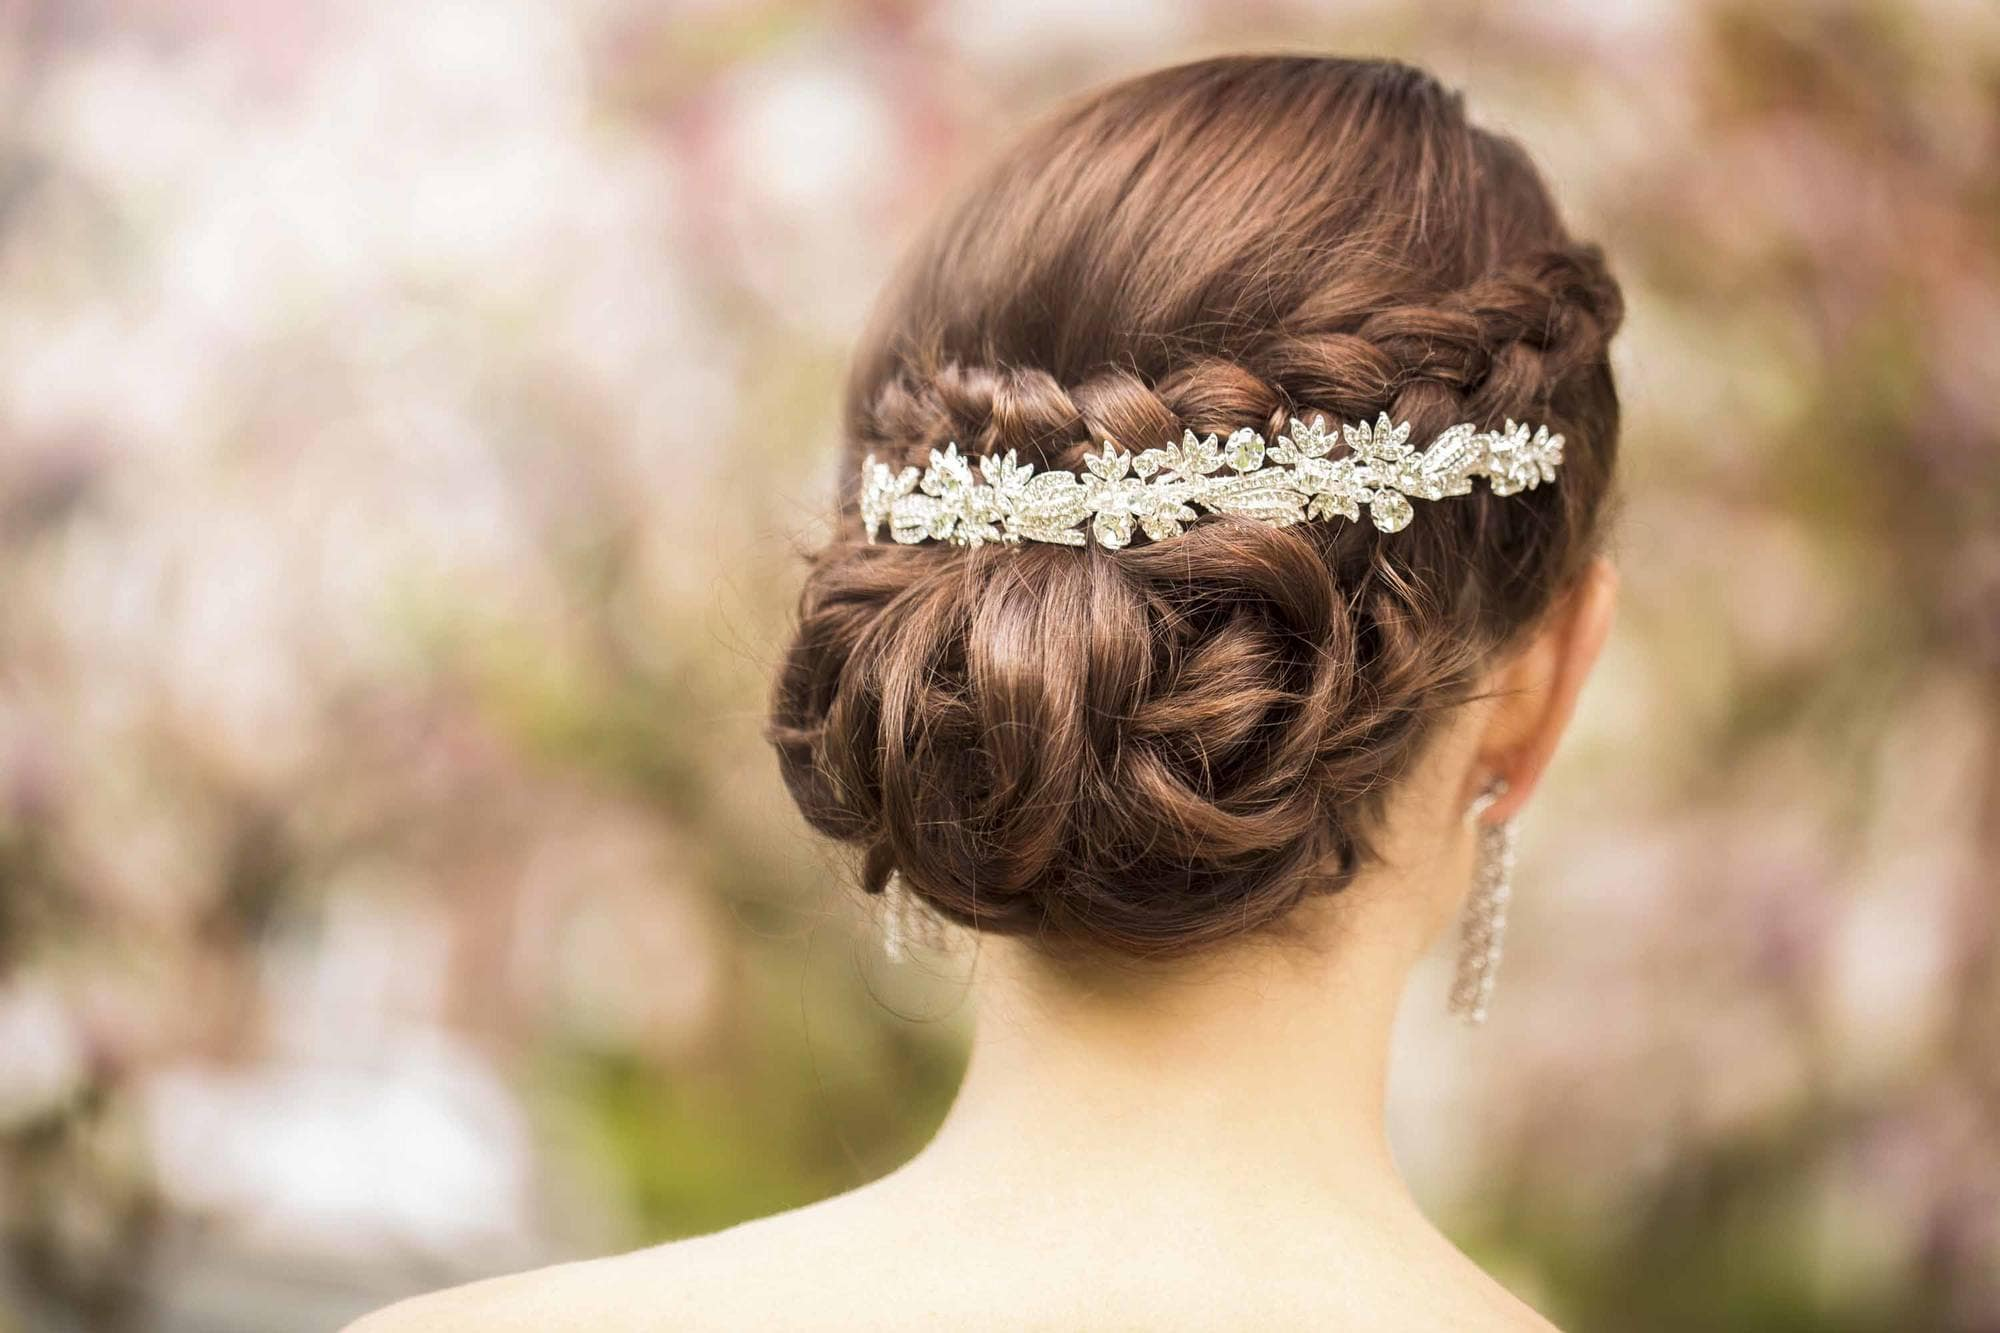 young bride with twisted chignon hairstyle